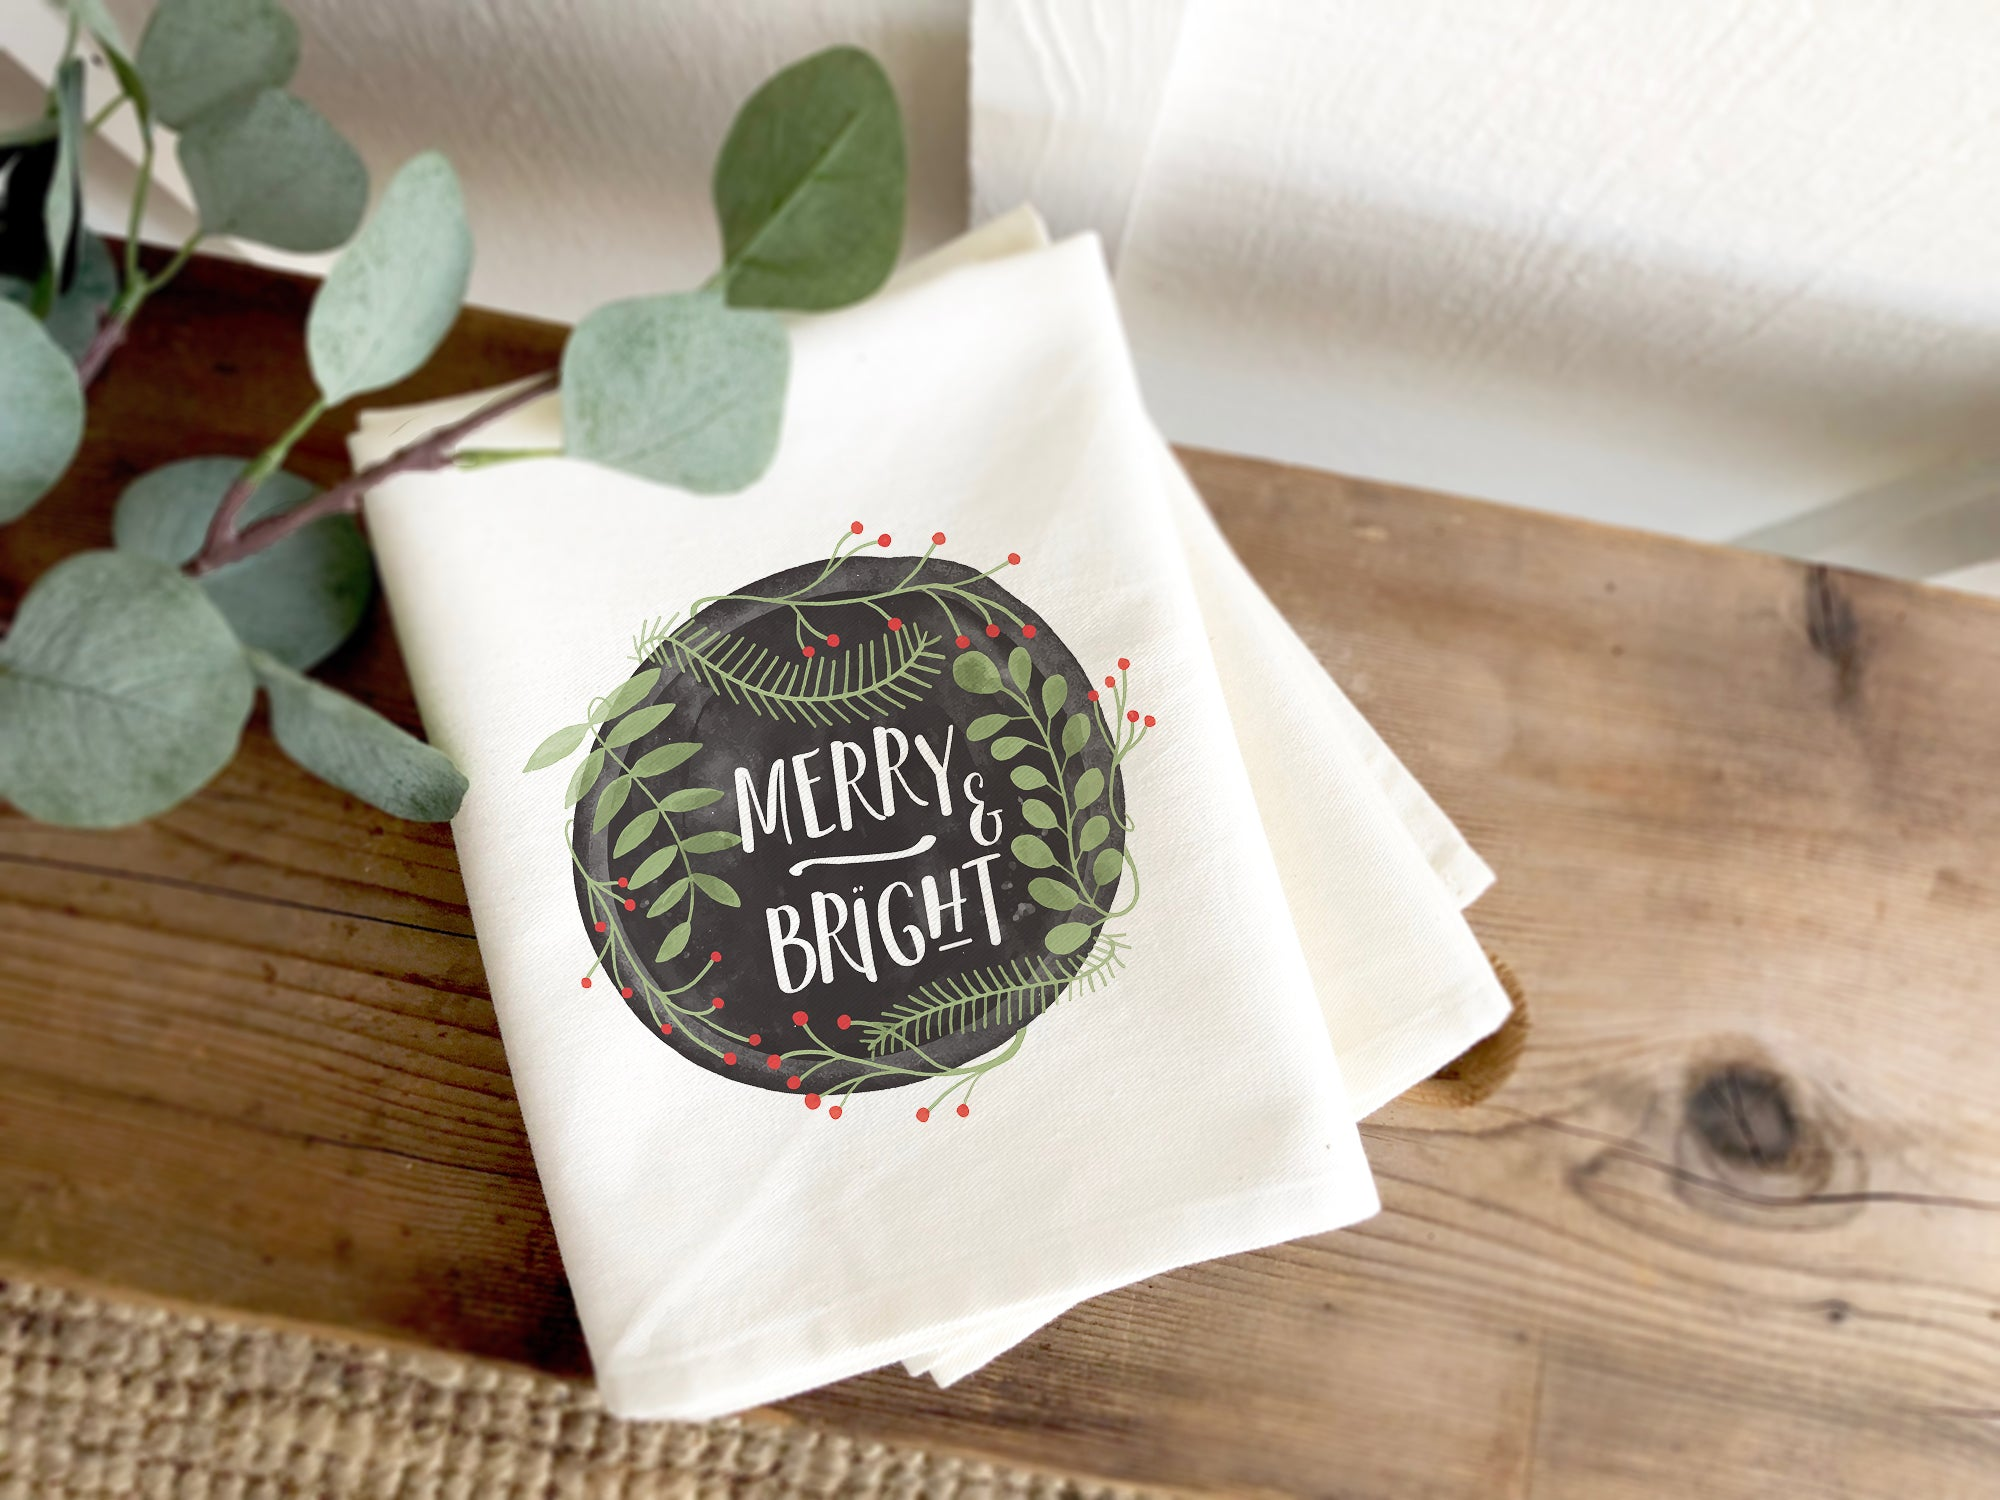 Merry and Bright Christmas Tea Towels